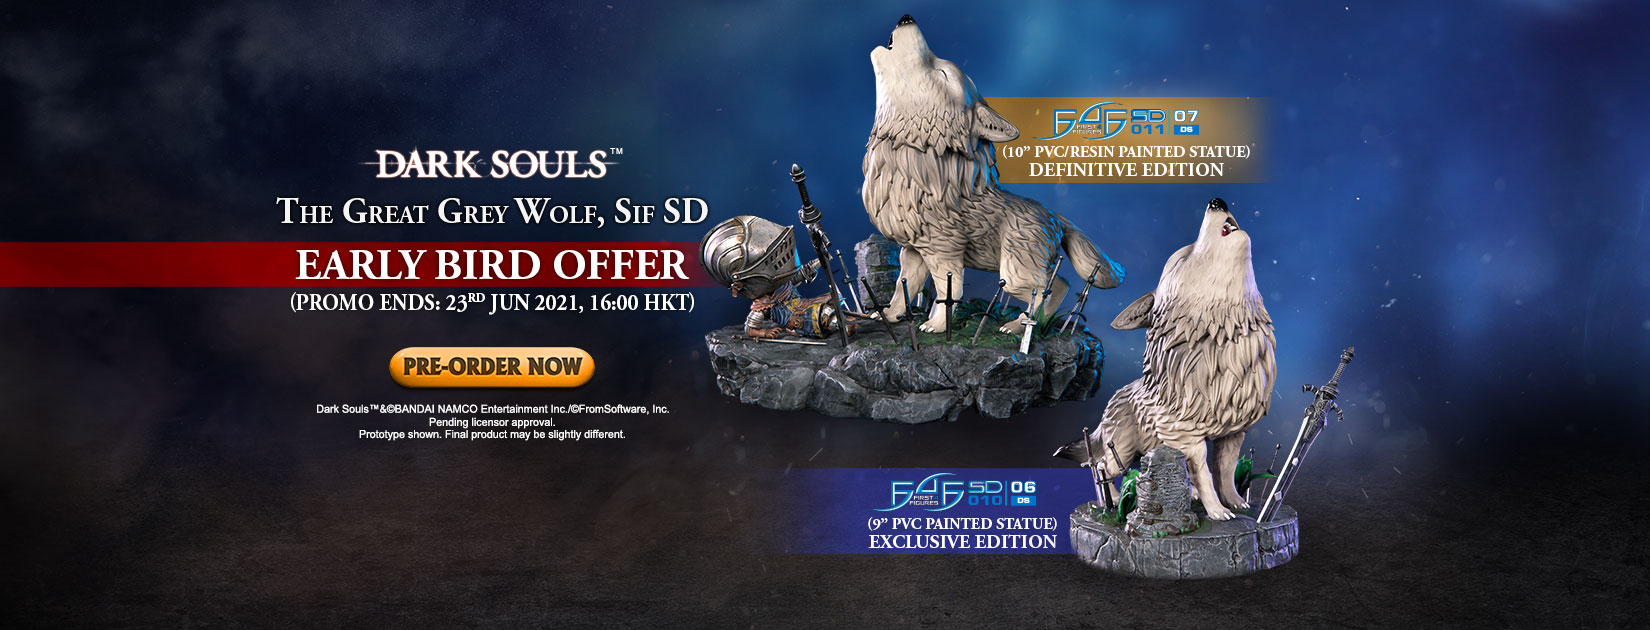 Dark Souls™ – The Great Grey Wolf, Sif SD PVC statue Early Bird Offer